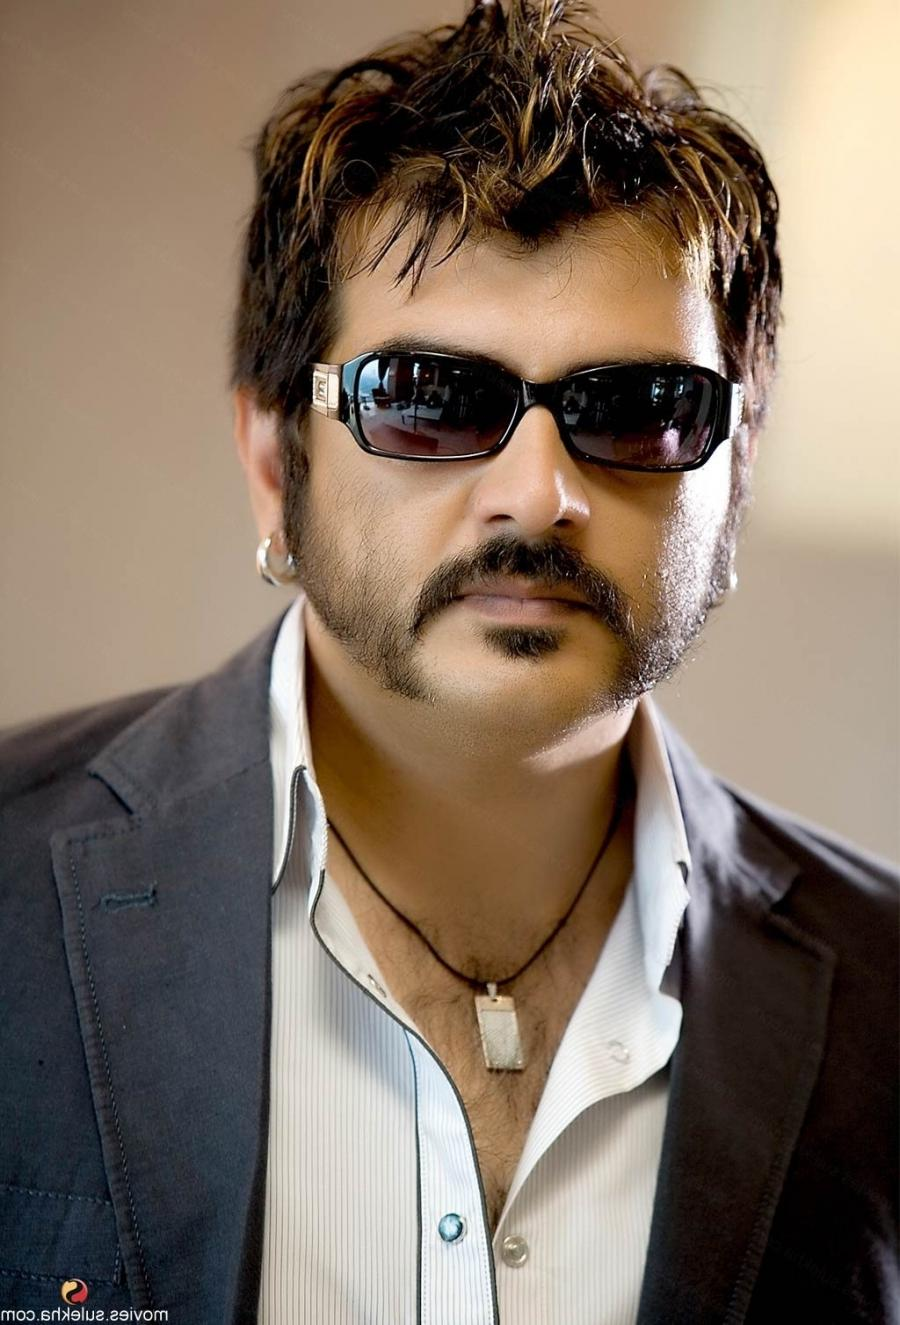 Ajith kumar photos wallpapers